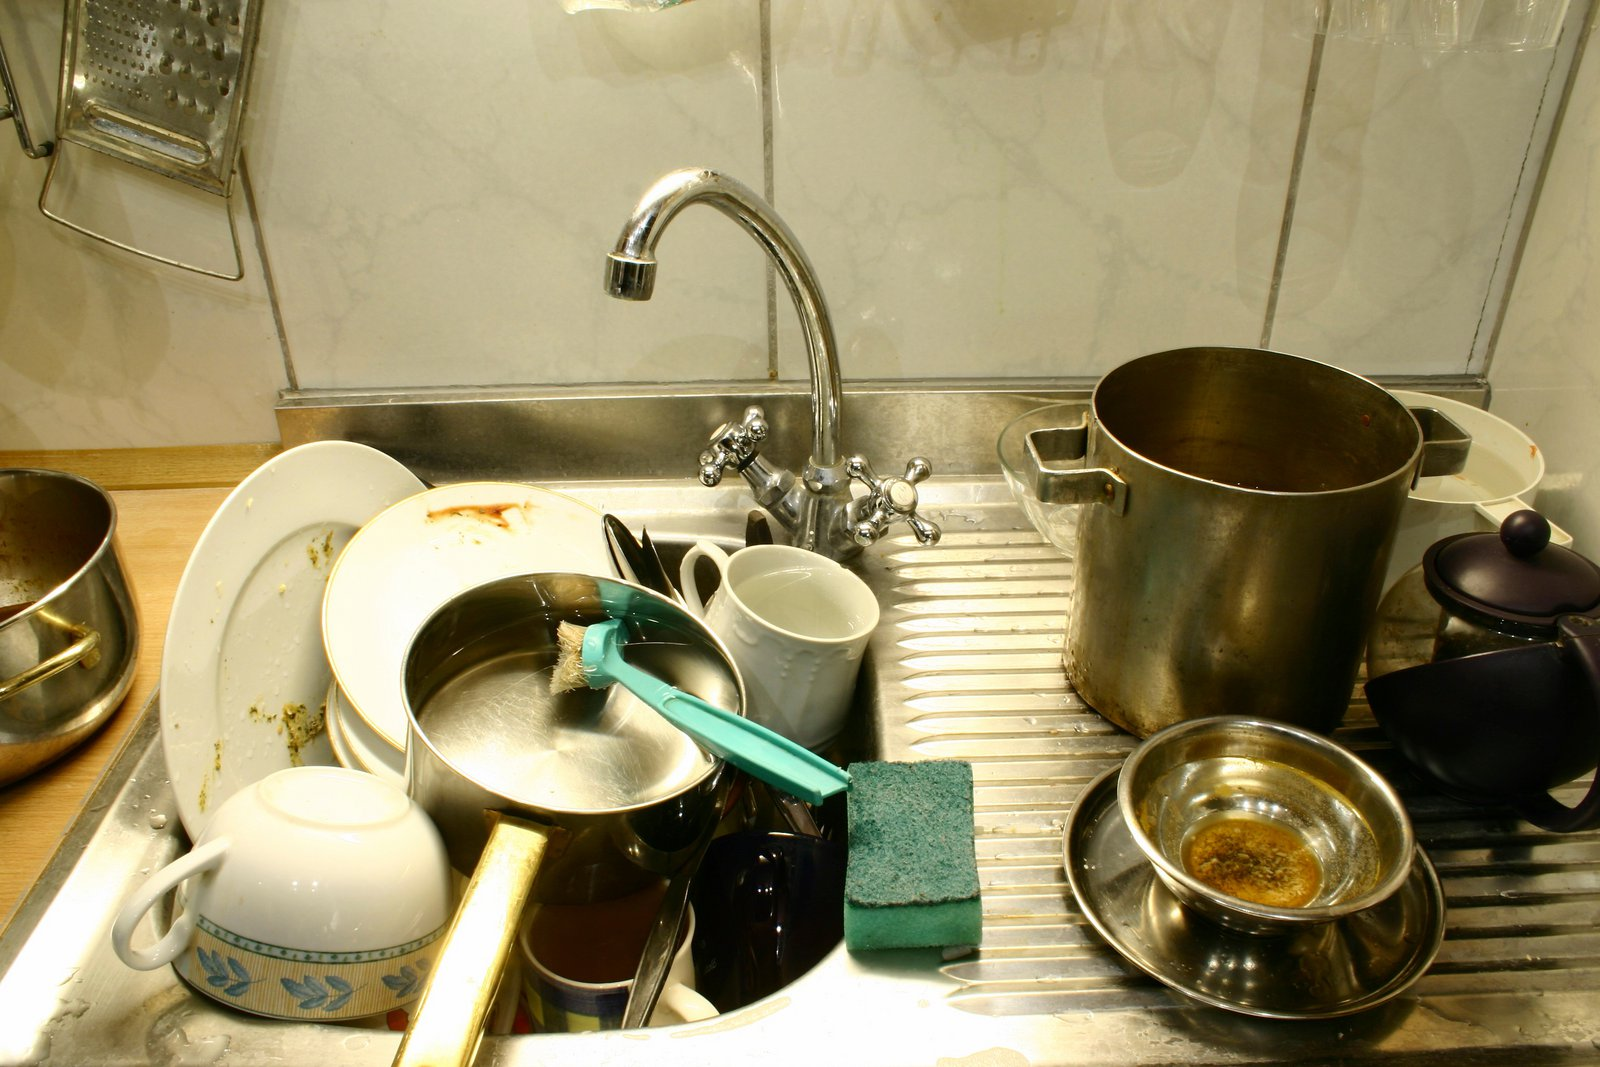 dishes-in-sink.jpg